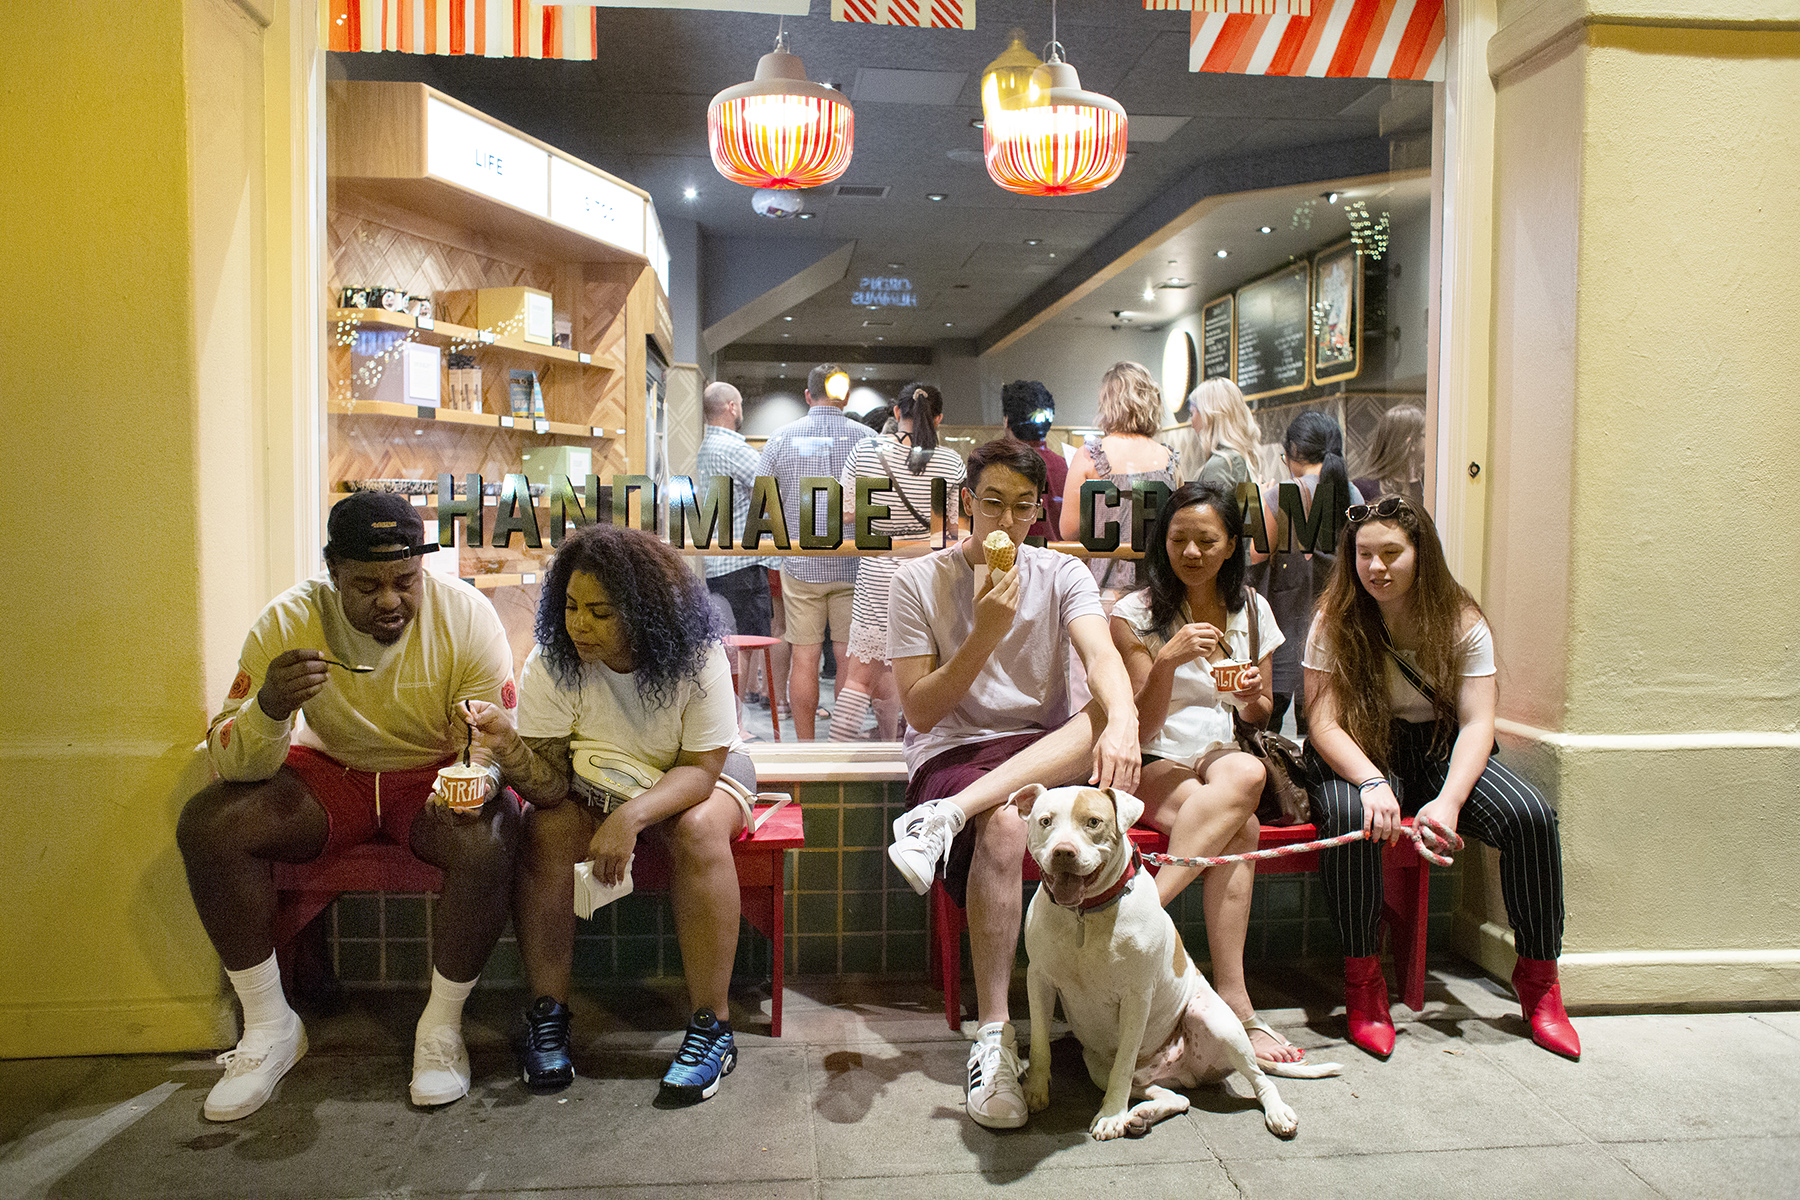 A crowd eats ice cream outside Salt & Straw, one of several high-end ice cream stores on University Avenue in the busy, bustling downtown area, during a heat wave in Palo Alto, Calif., on June, 10, 2019.